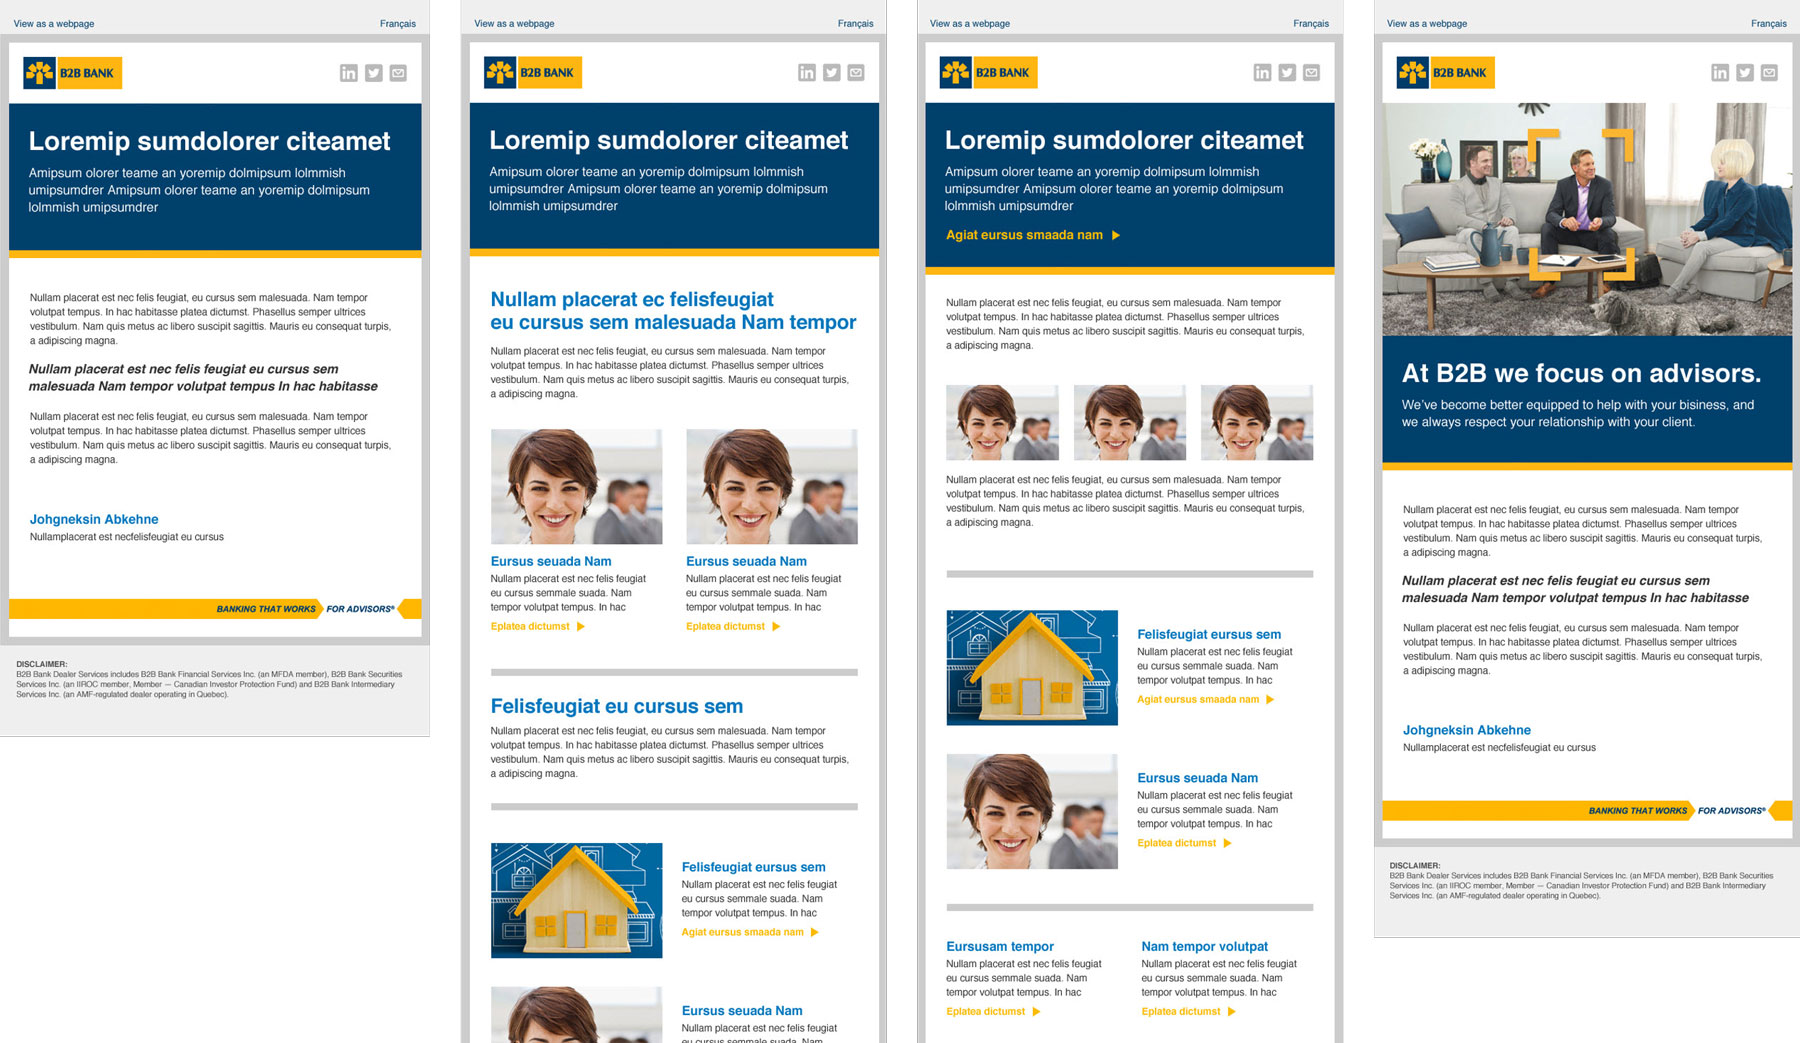 B2B Bank Email Templates